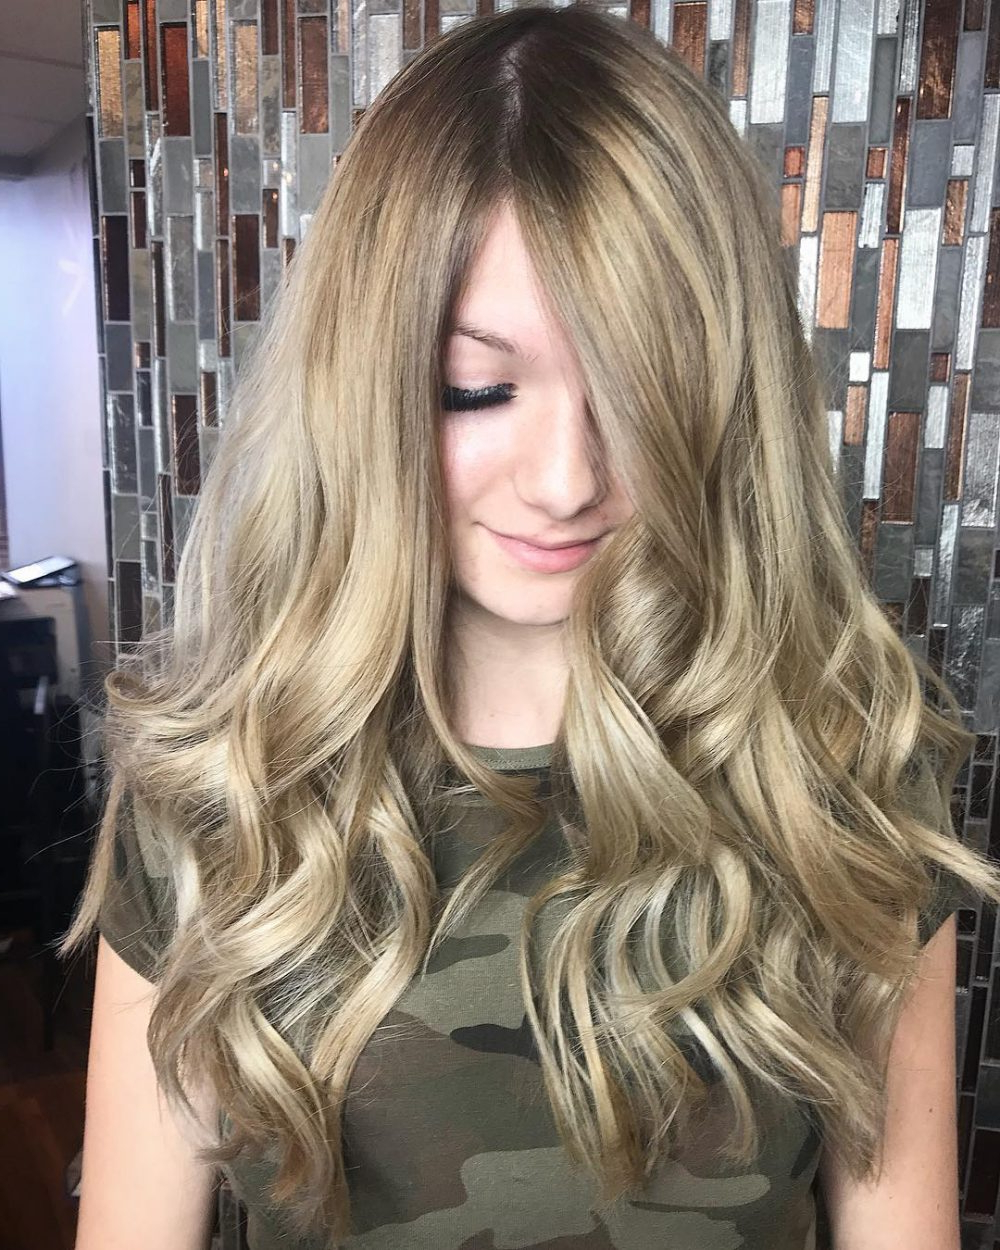 24 Long Wavy Hair Ideas That Are Freaking Hot In 2019 Throughout Popular Perfect Loose Waves Hairstyles For Long Faces (View 3 of 20)